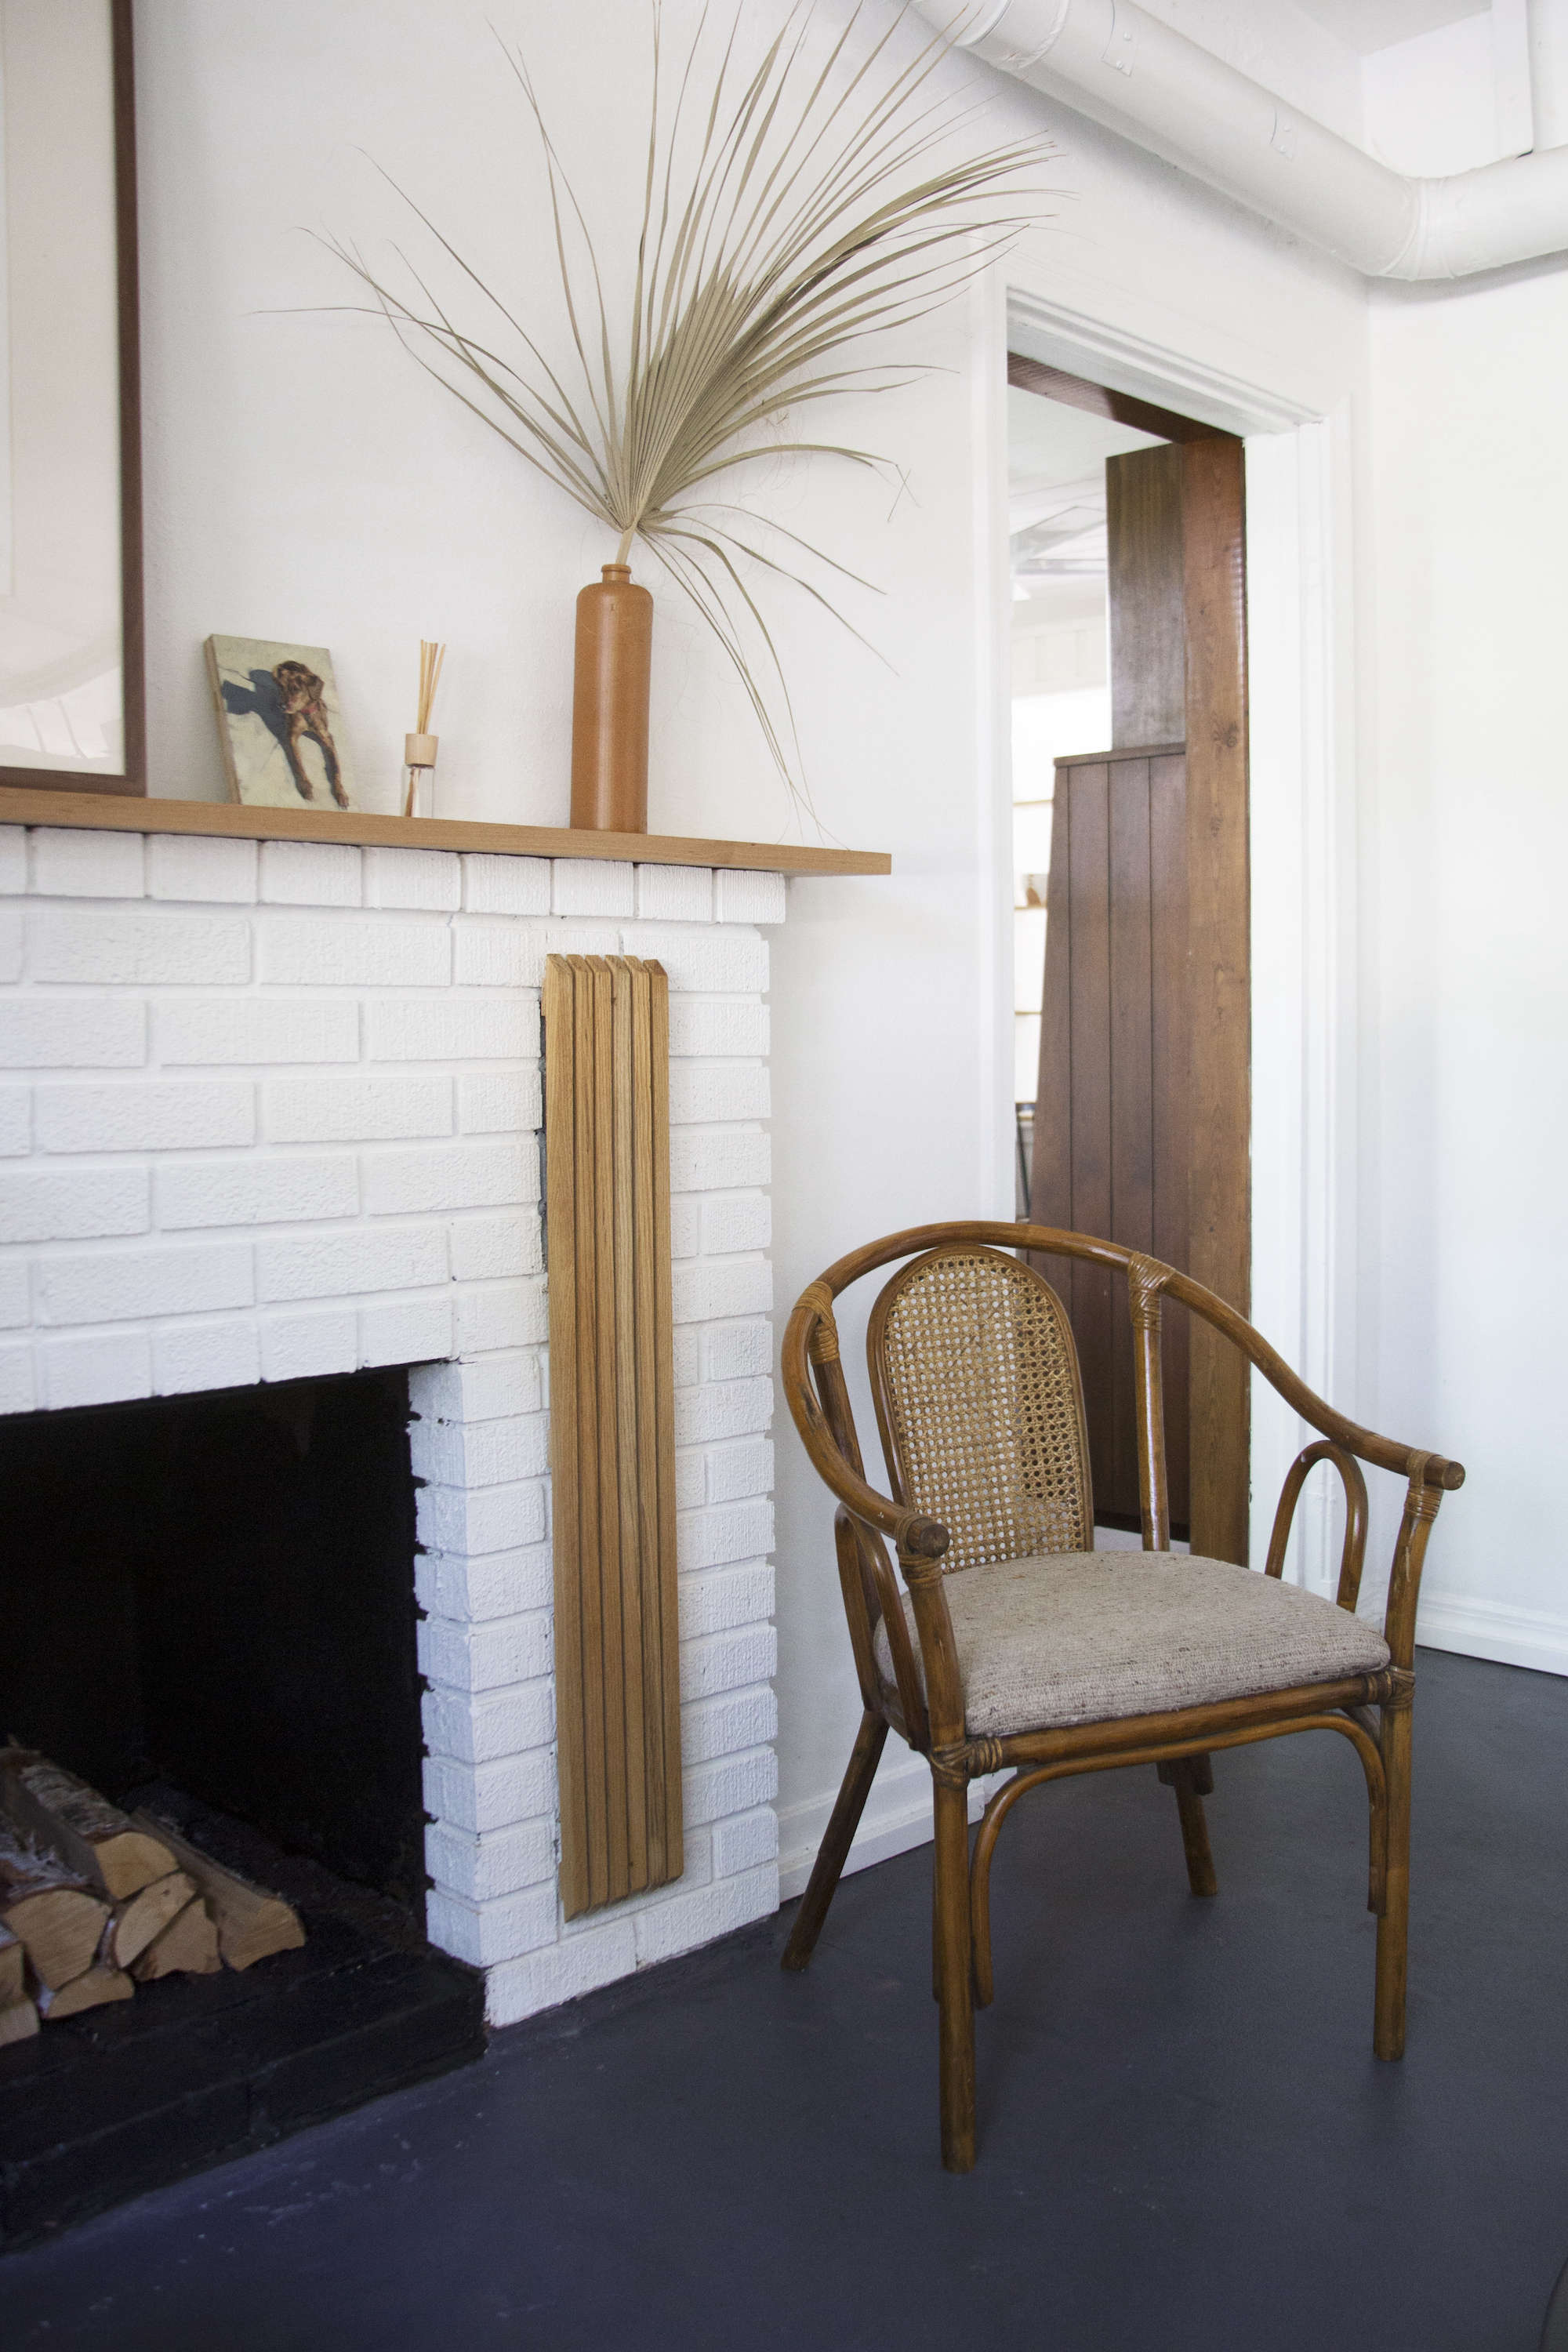 cane-armchair-fireplace-painted-white-budget-remodel-living-room